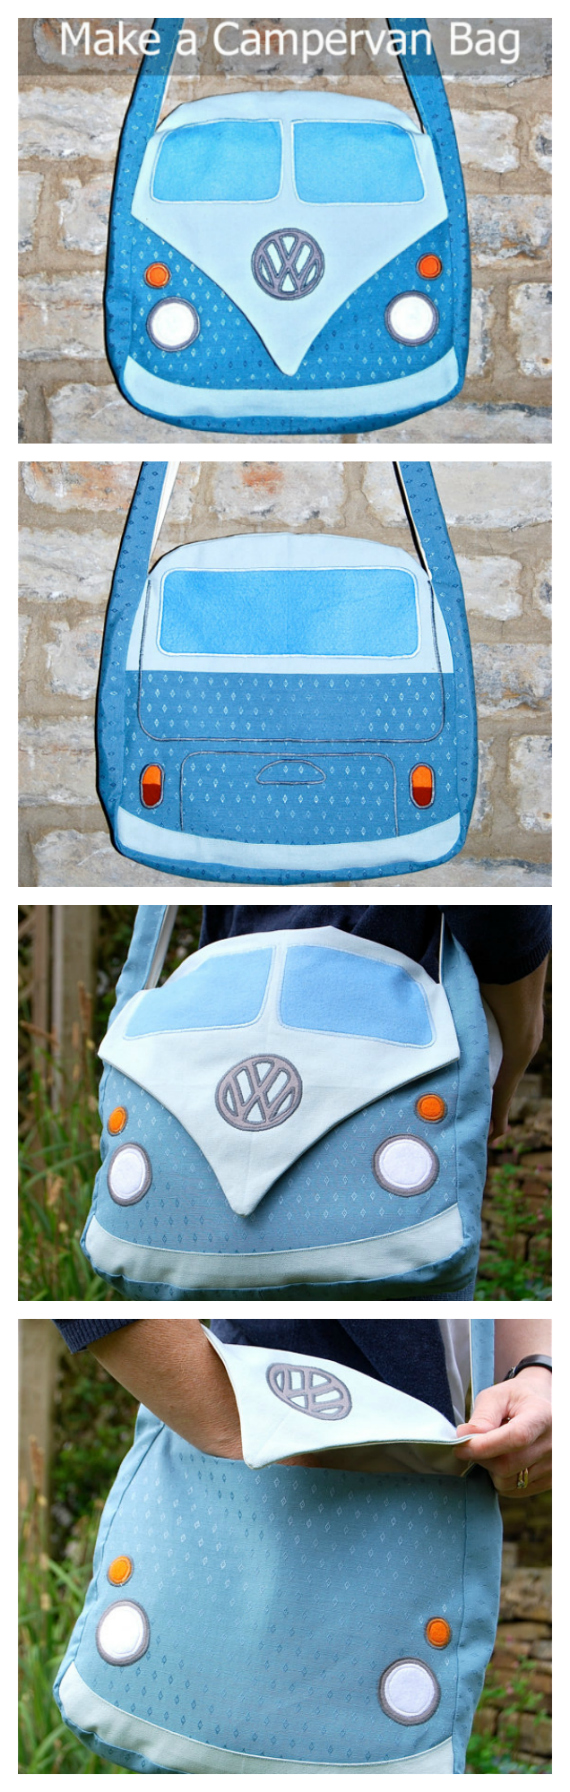 "If you want to make a really fun bag for yourself, family or friends then you can get this downloadable pdf pattern here. This sewing pattern allows you to make this very unique bag based on the Splitscreen Campervan. This bag will have you standing out from the crowd and will get you many admirers. The finished bag measures approximately 12"" by 12"" with a strap long enough to cross over your body. The bag also has a handy pocket inside to help you keep all your essentials organised."